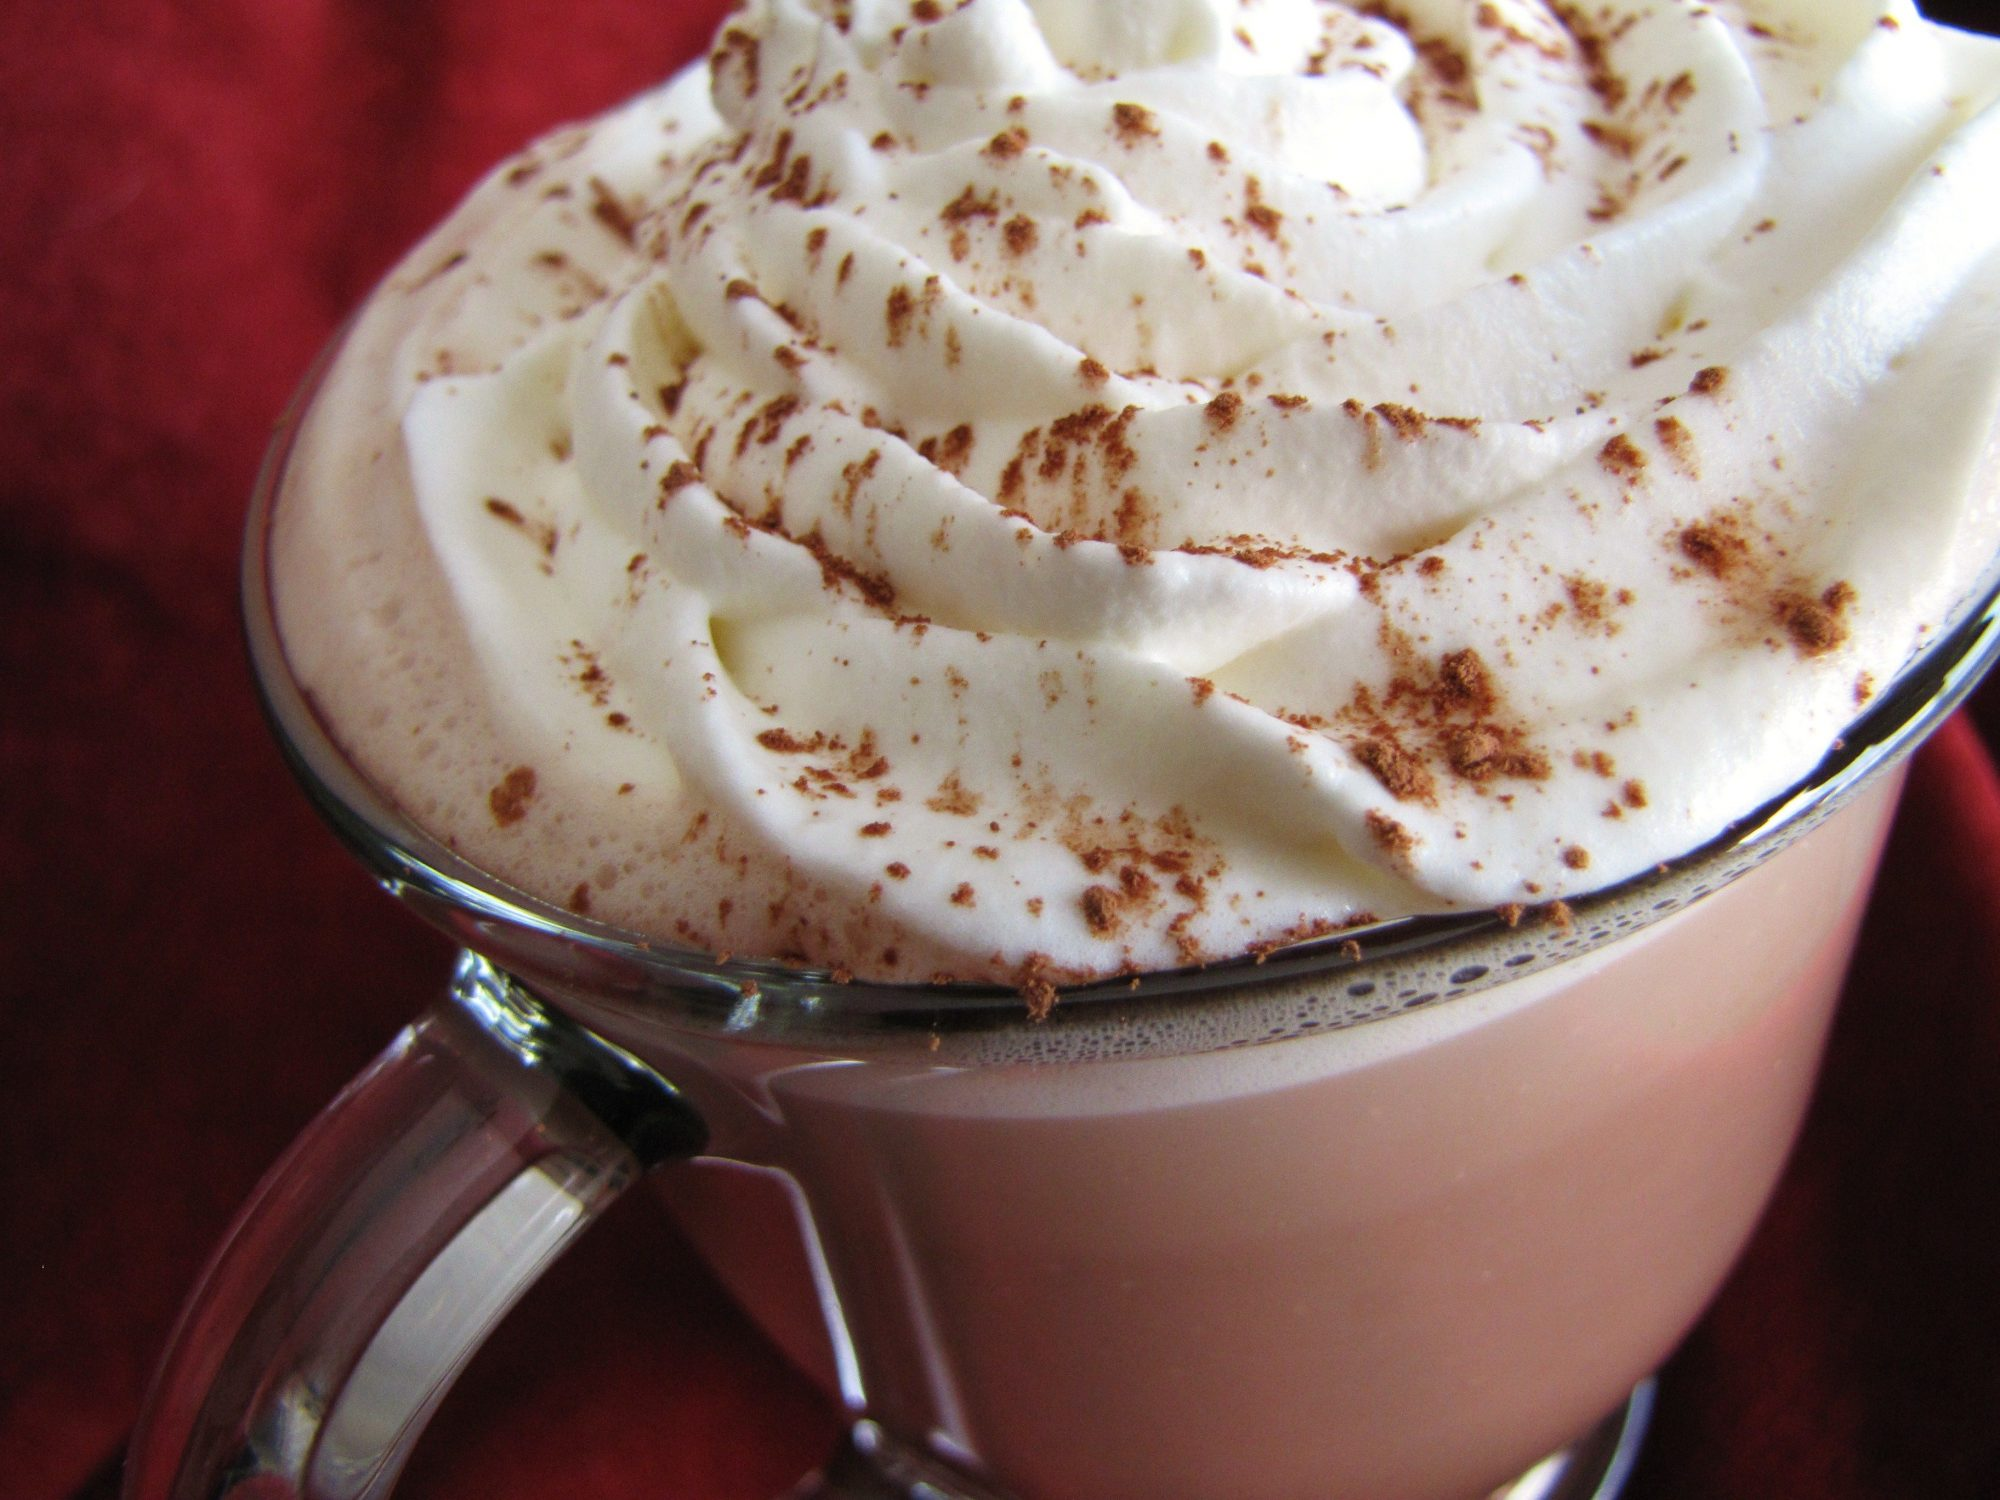 closeup of a whipped cream-topped glass mug of hot cocoa dusted with cinnamon